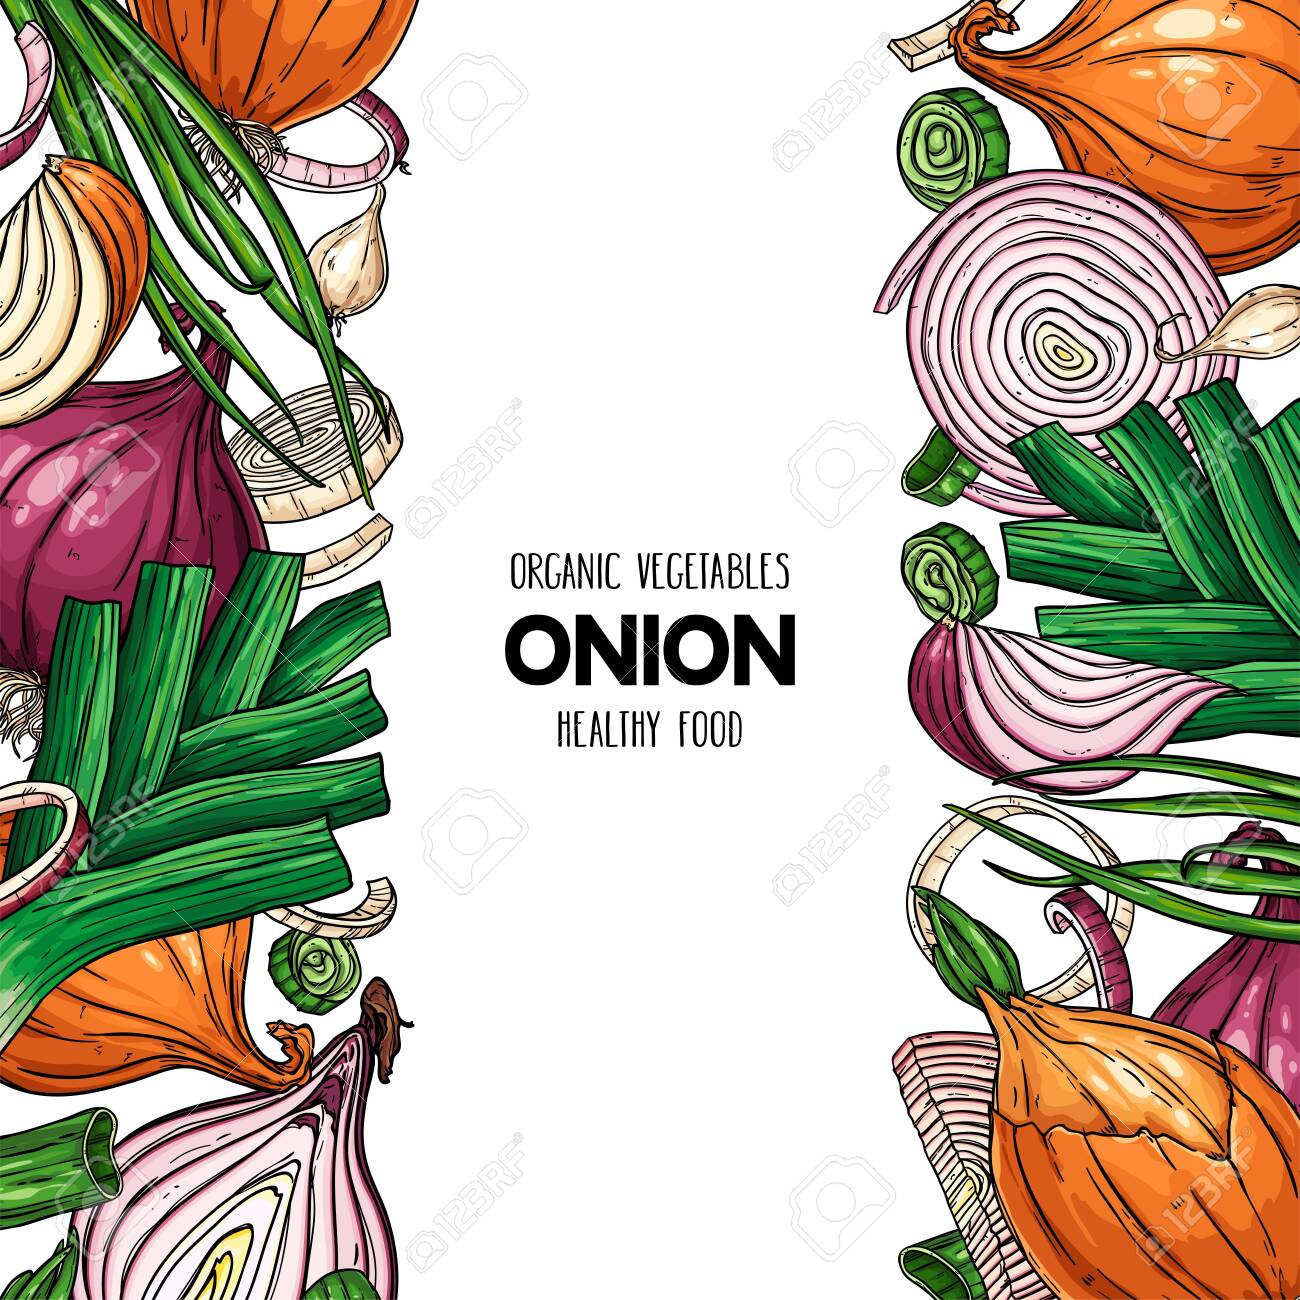 Vector hand drawn frame with onion bulb, slices, halves, pieces, green onion and leek. Organic vegetables illustration - 156657681